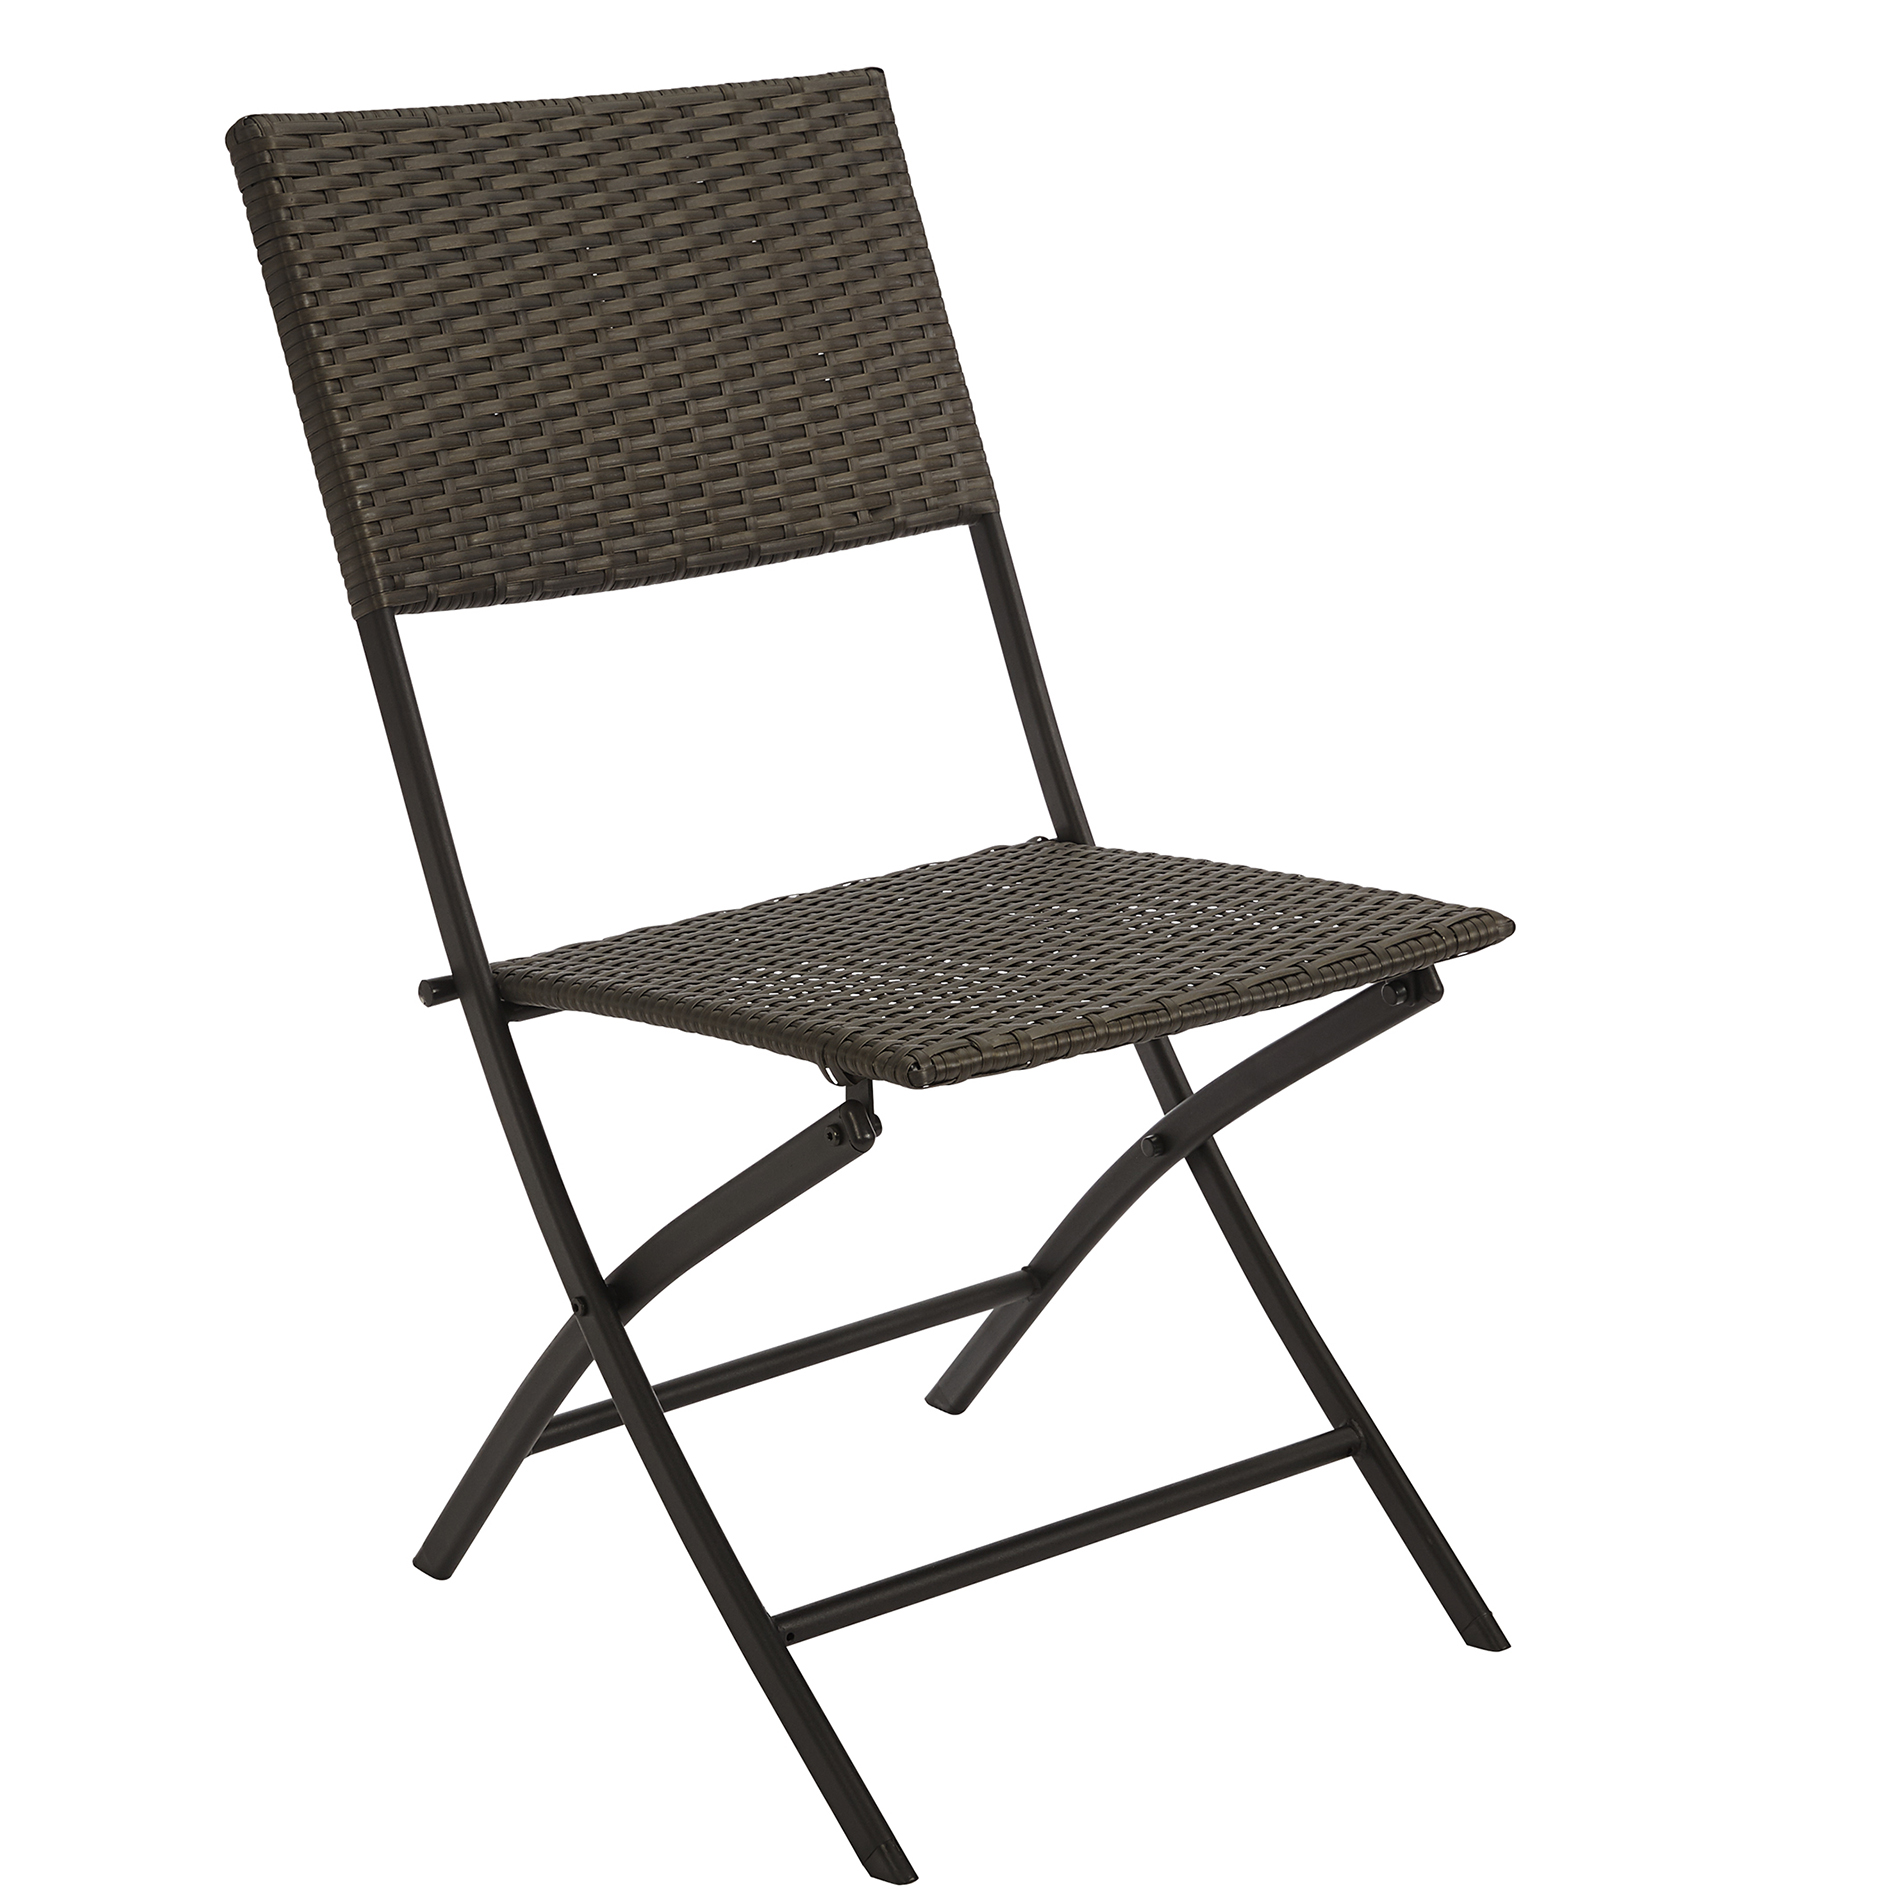 folding armless camping chairs steel chair manufacturers coimbatore jaclyn smith resin wicker